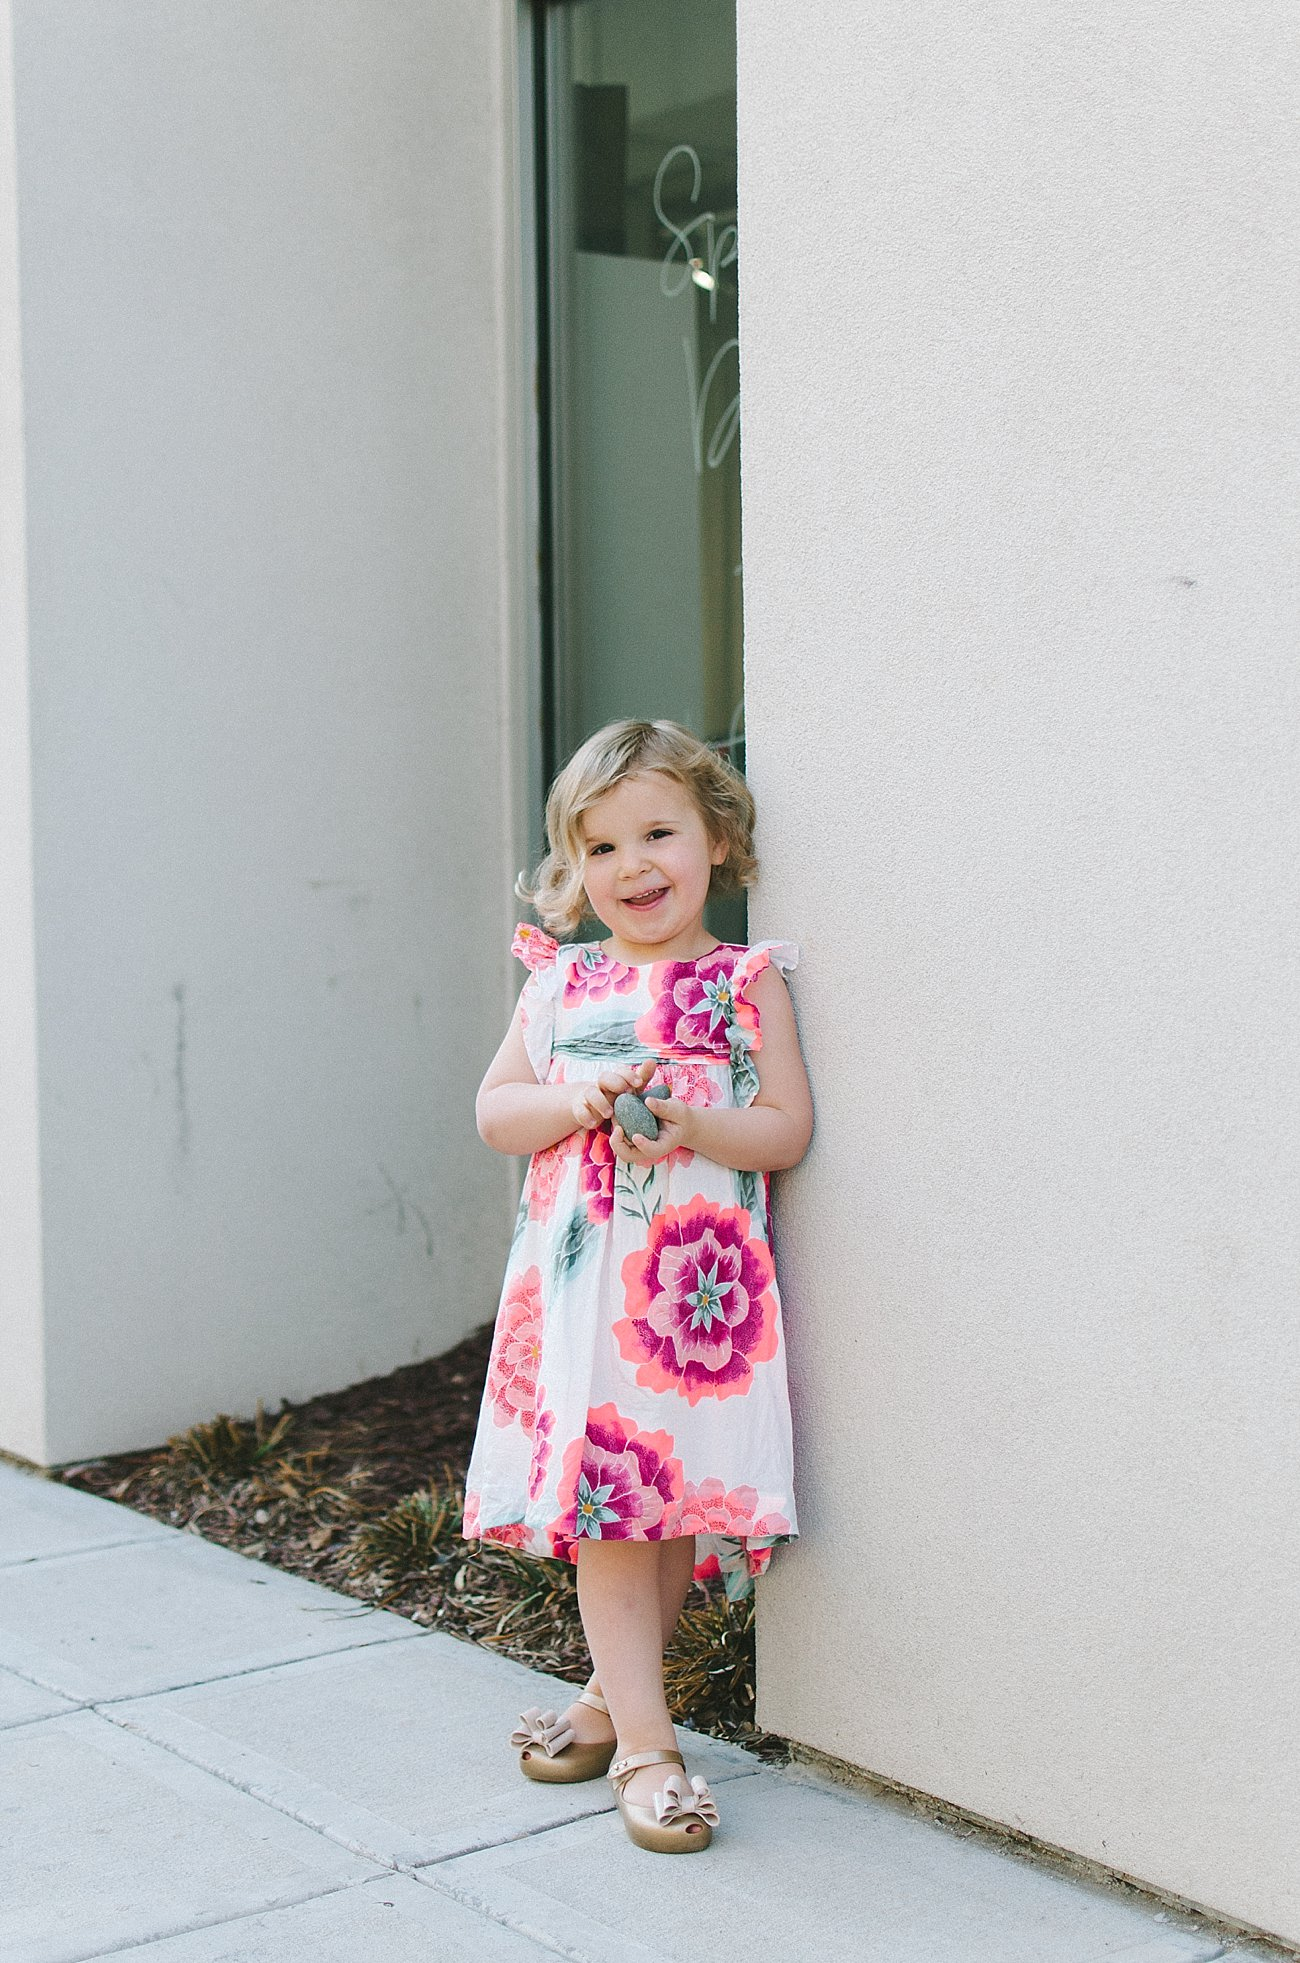 Ethically Made Easter Outfits for Women, Children, and Babies - Ethical Fashion - Fair Trade Fashion (13)